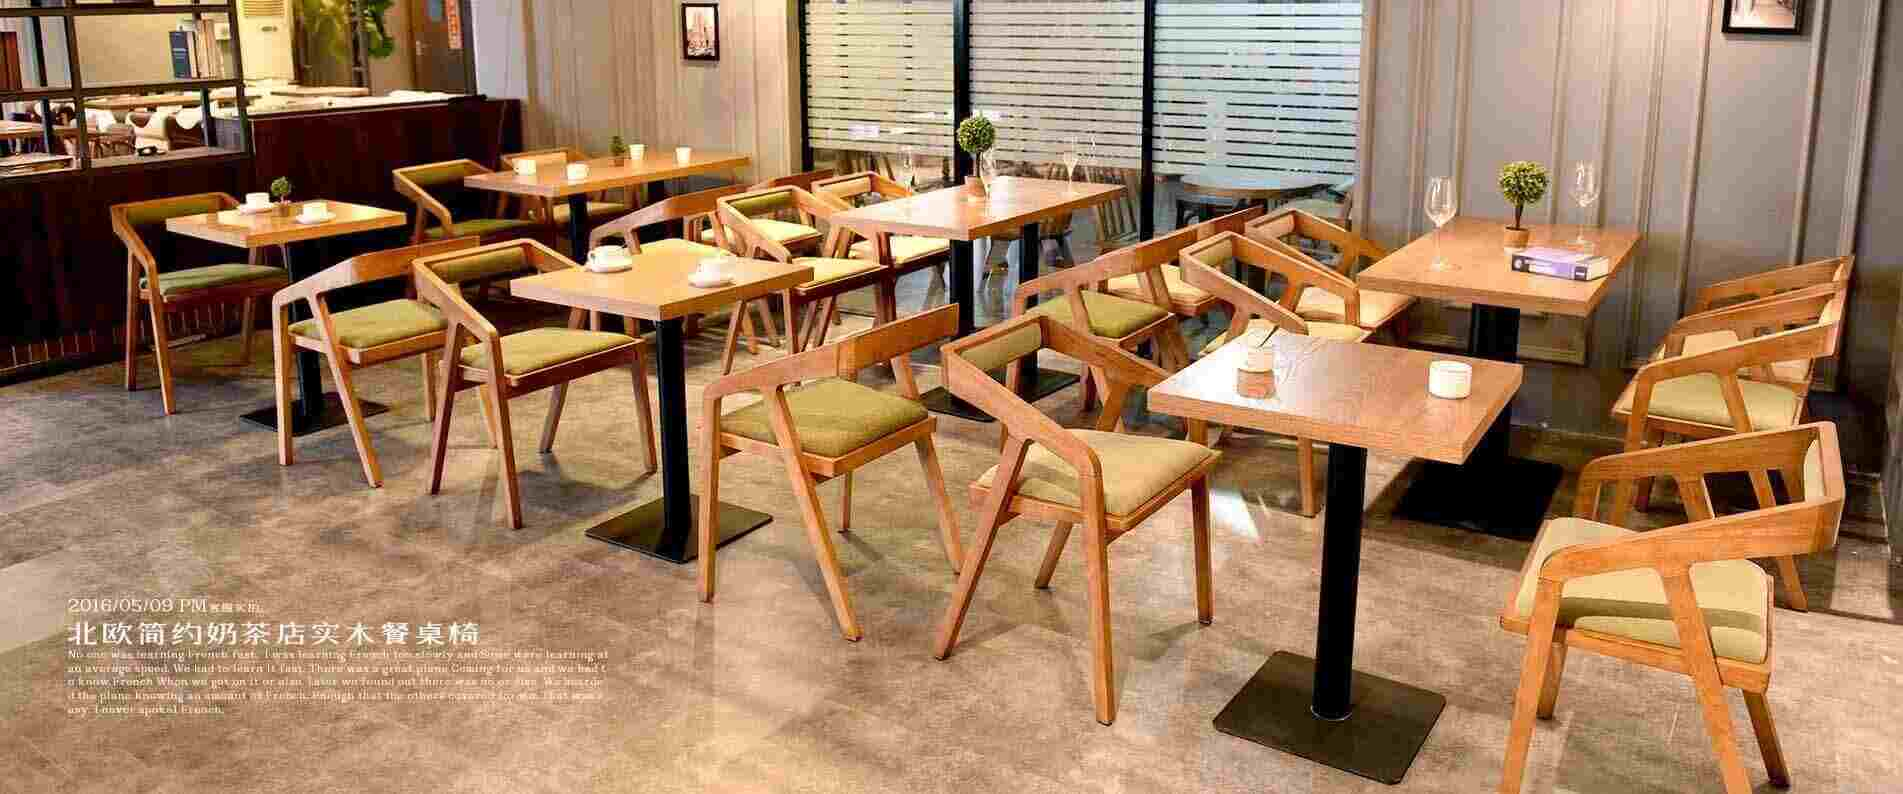 New Zealand Restaurant furniture